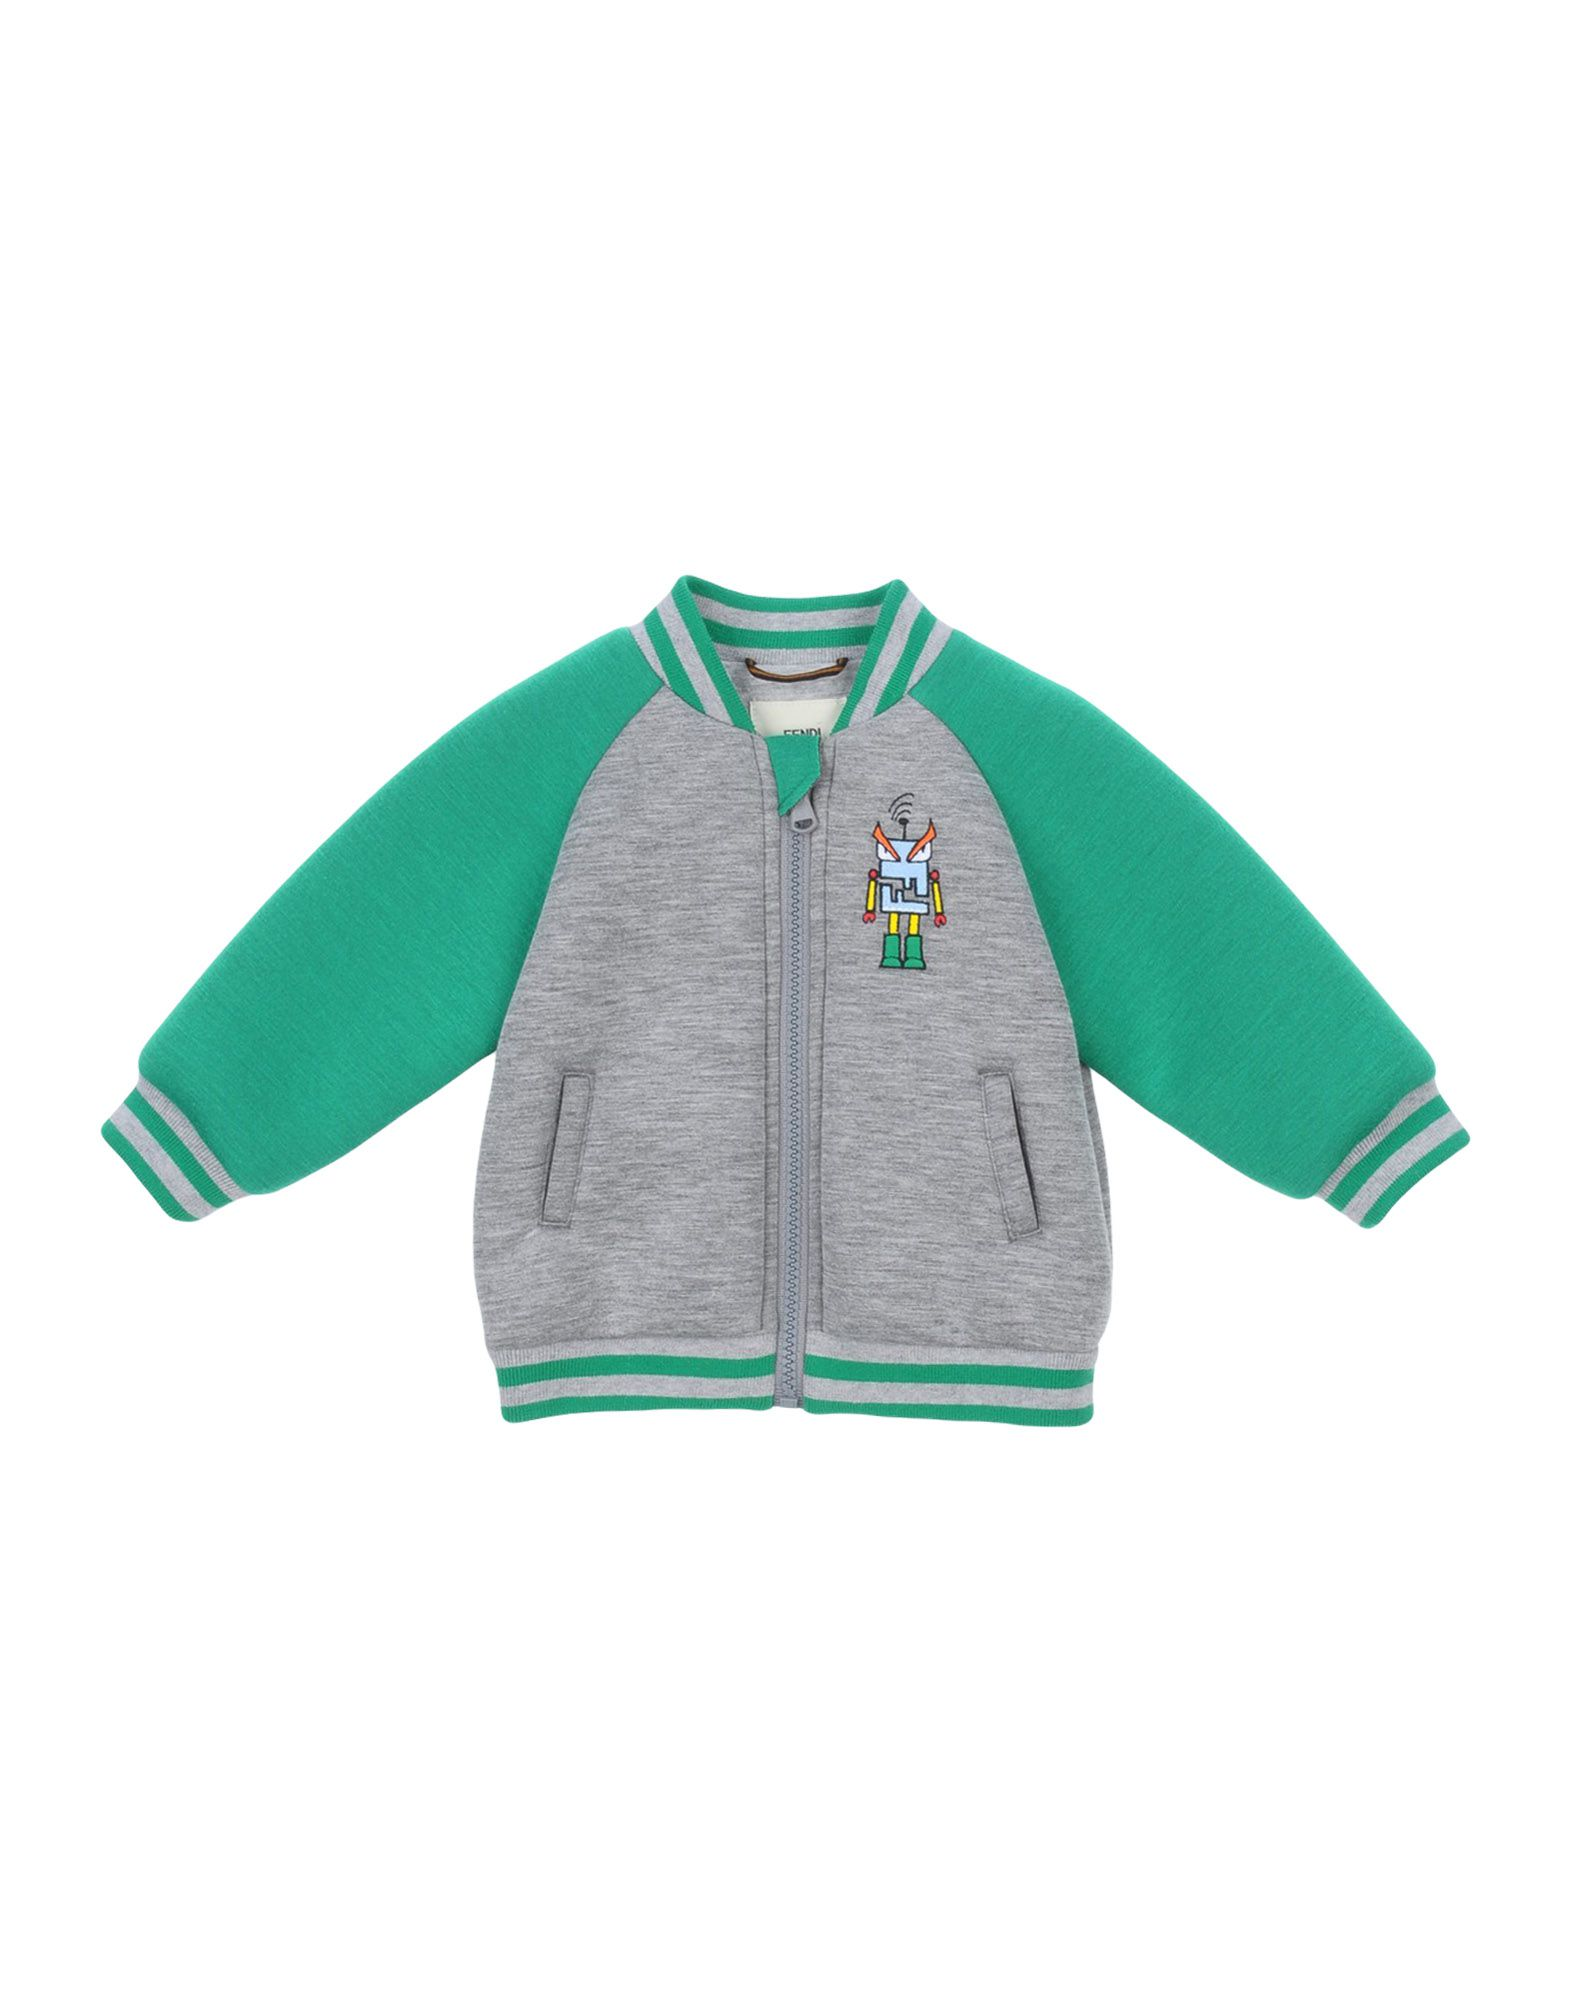 Fendi clothing for baby boy & toddler 0 24 months